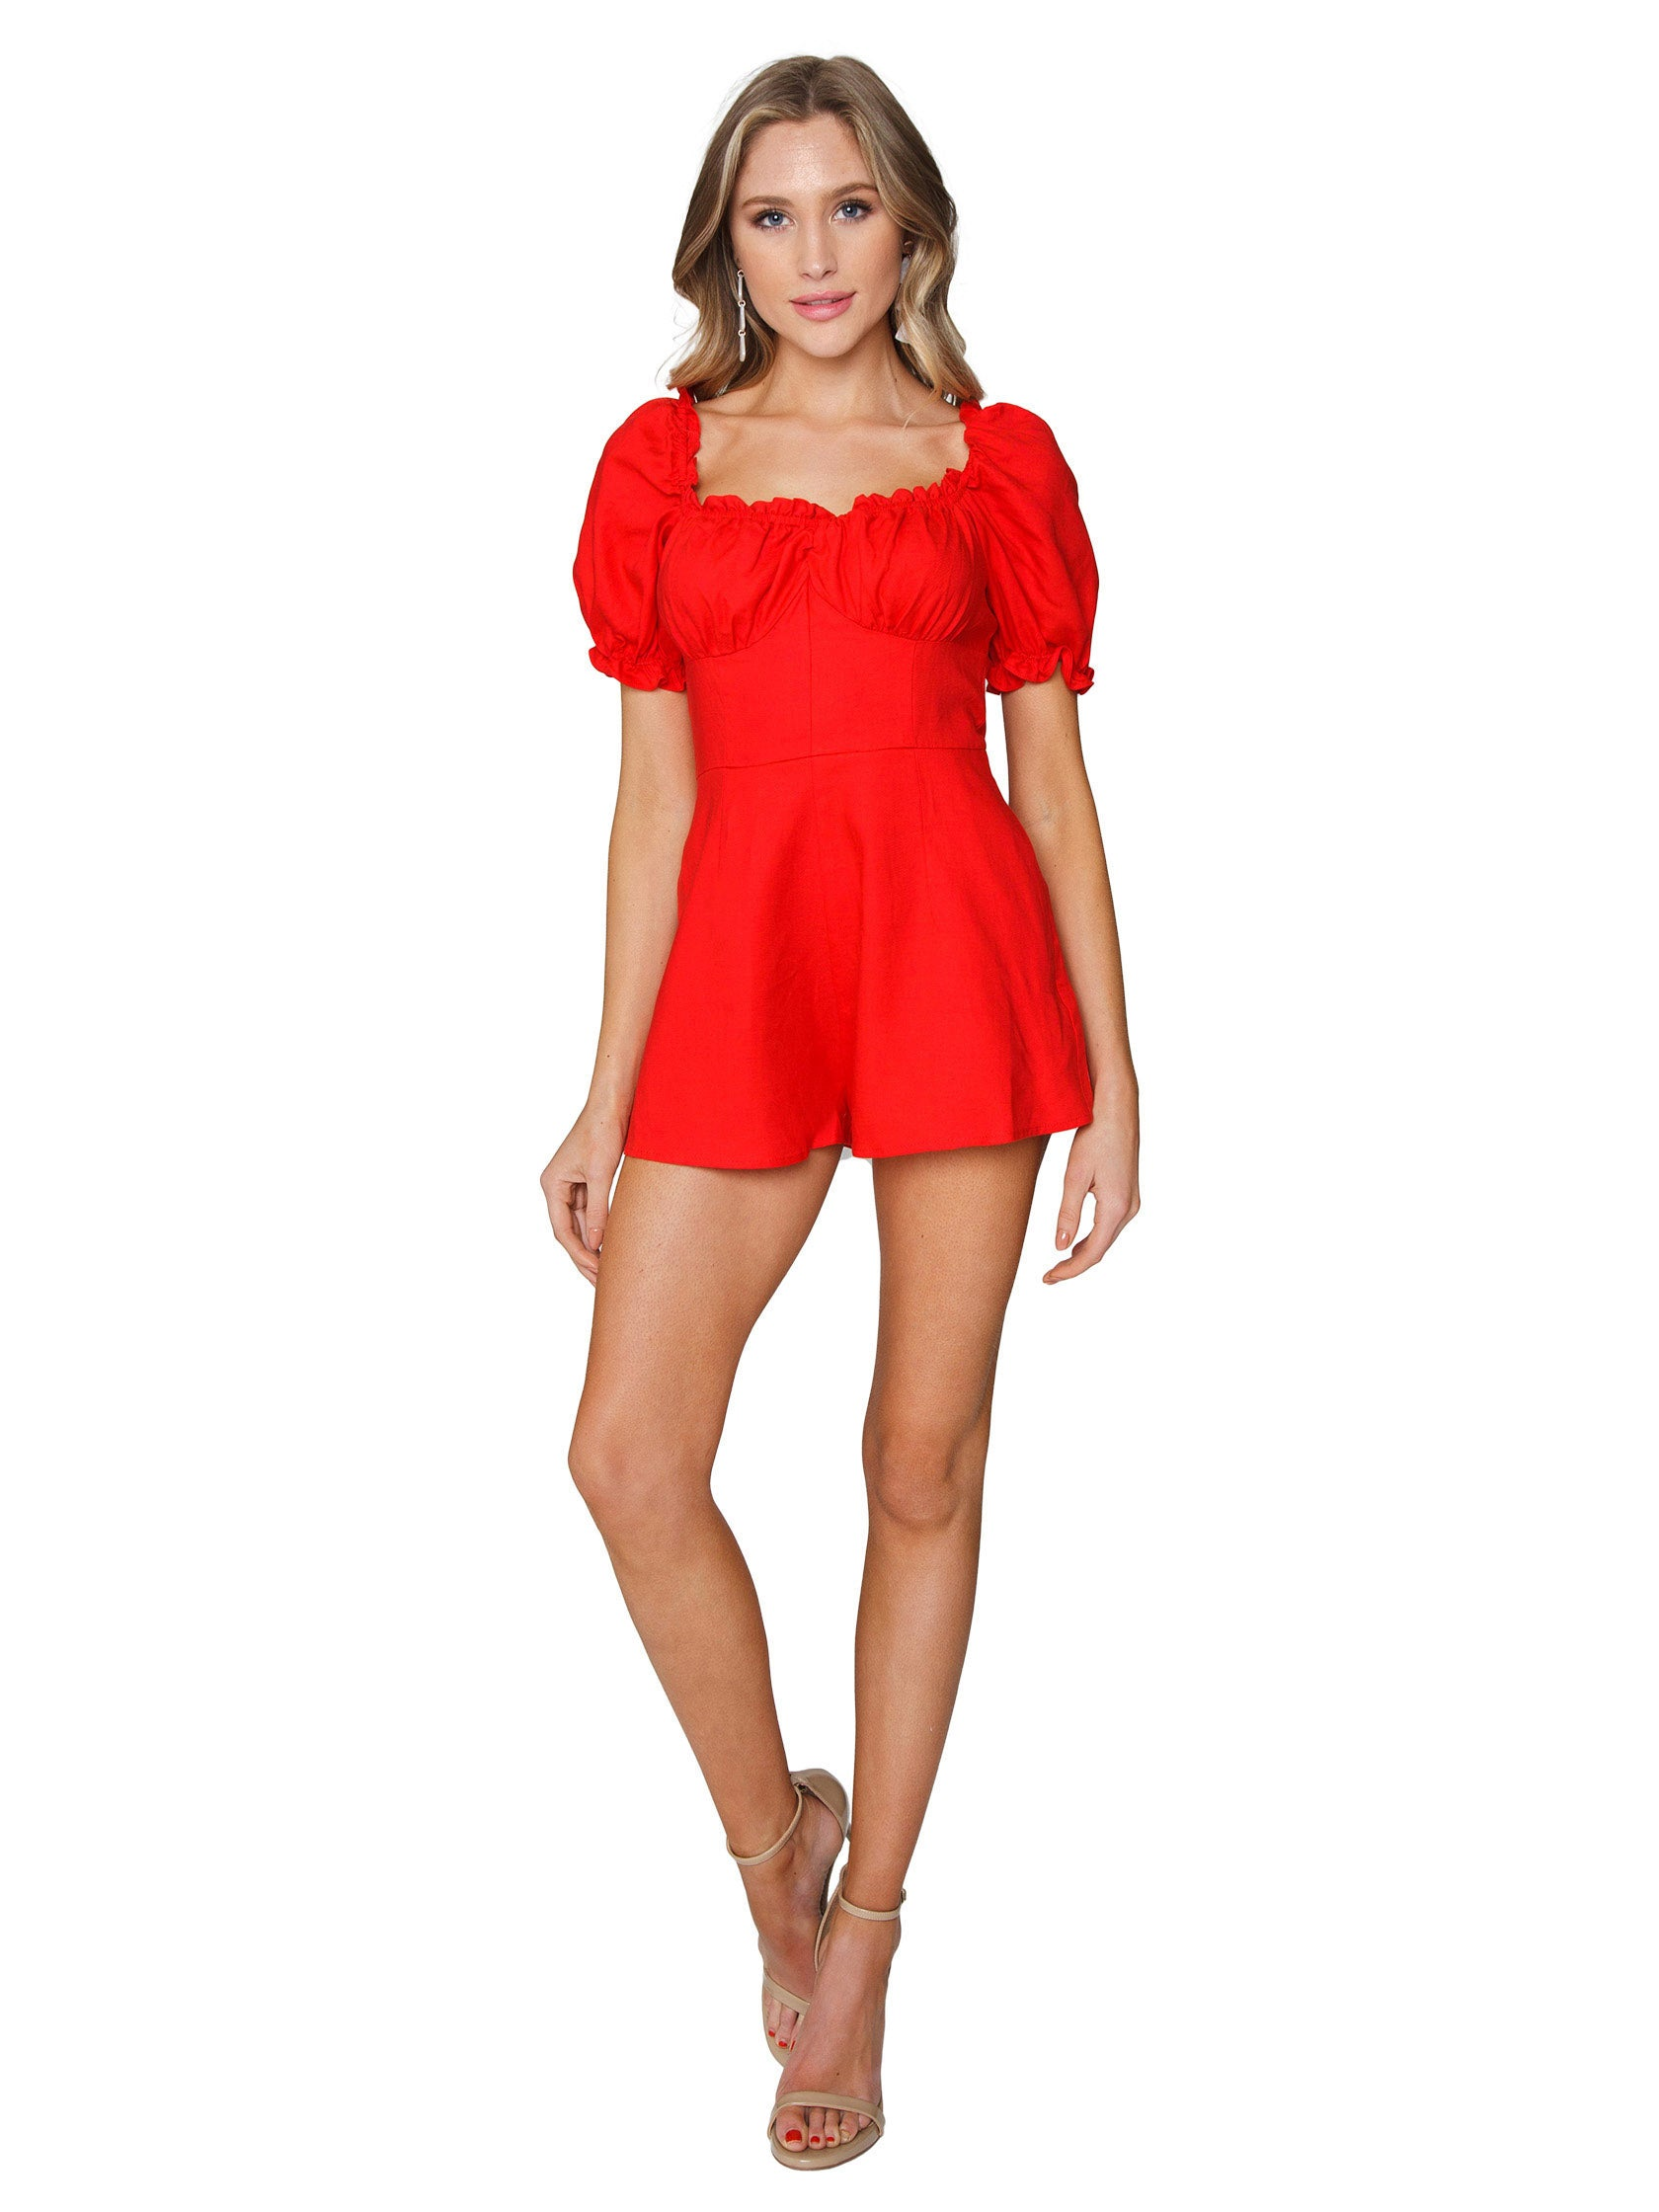 76f7c7e65693 Women outfit in a romper rental from Finders Keepers called Aranciata  Playsuit